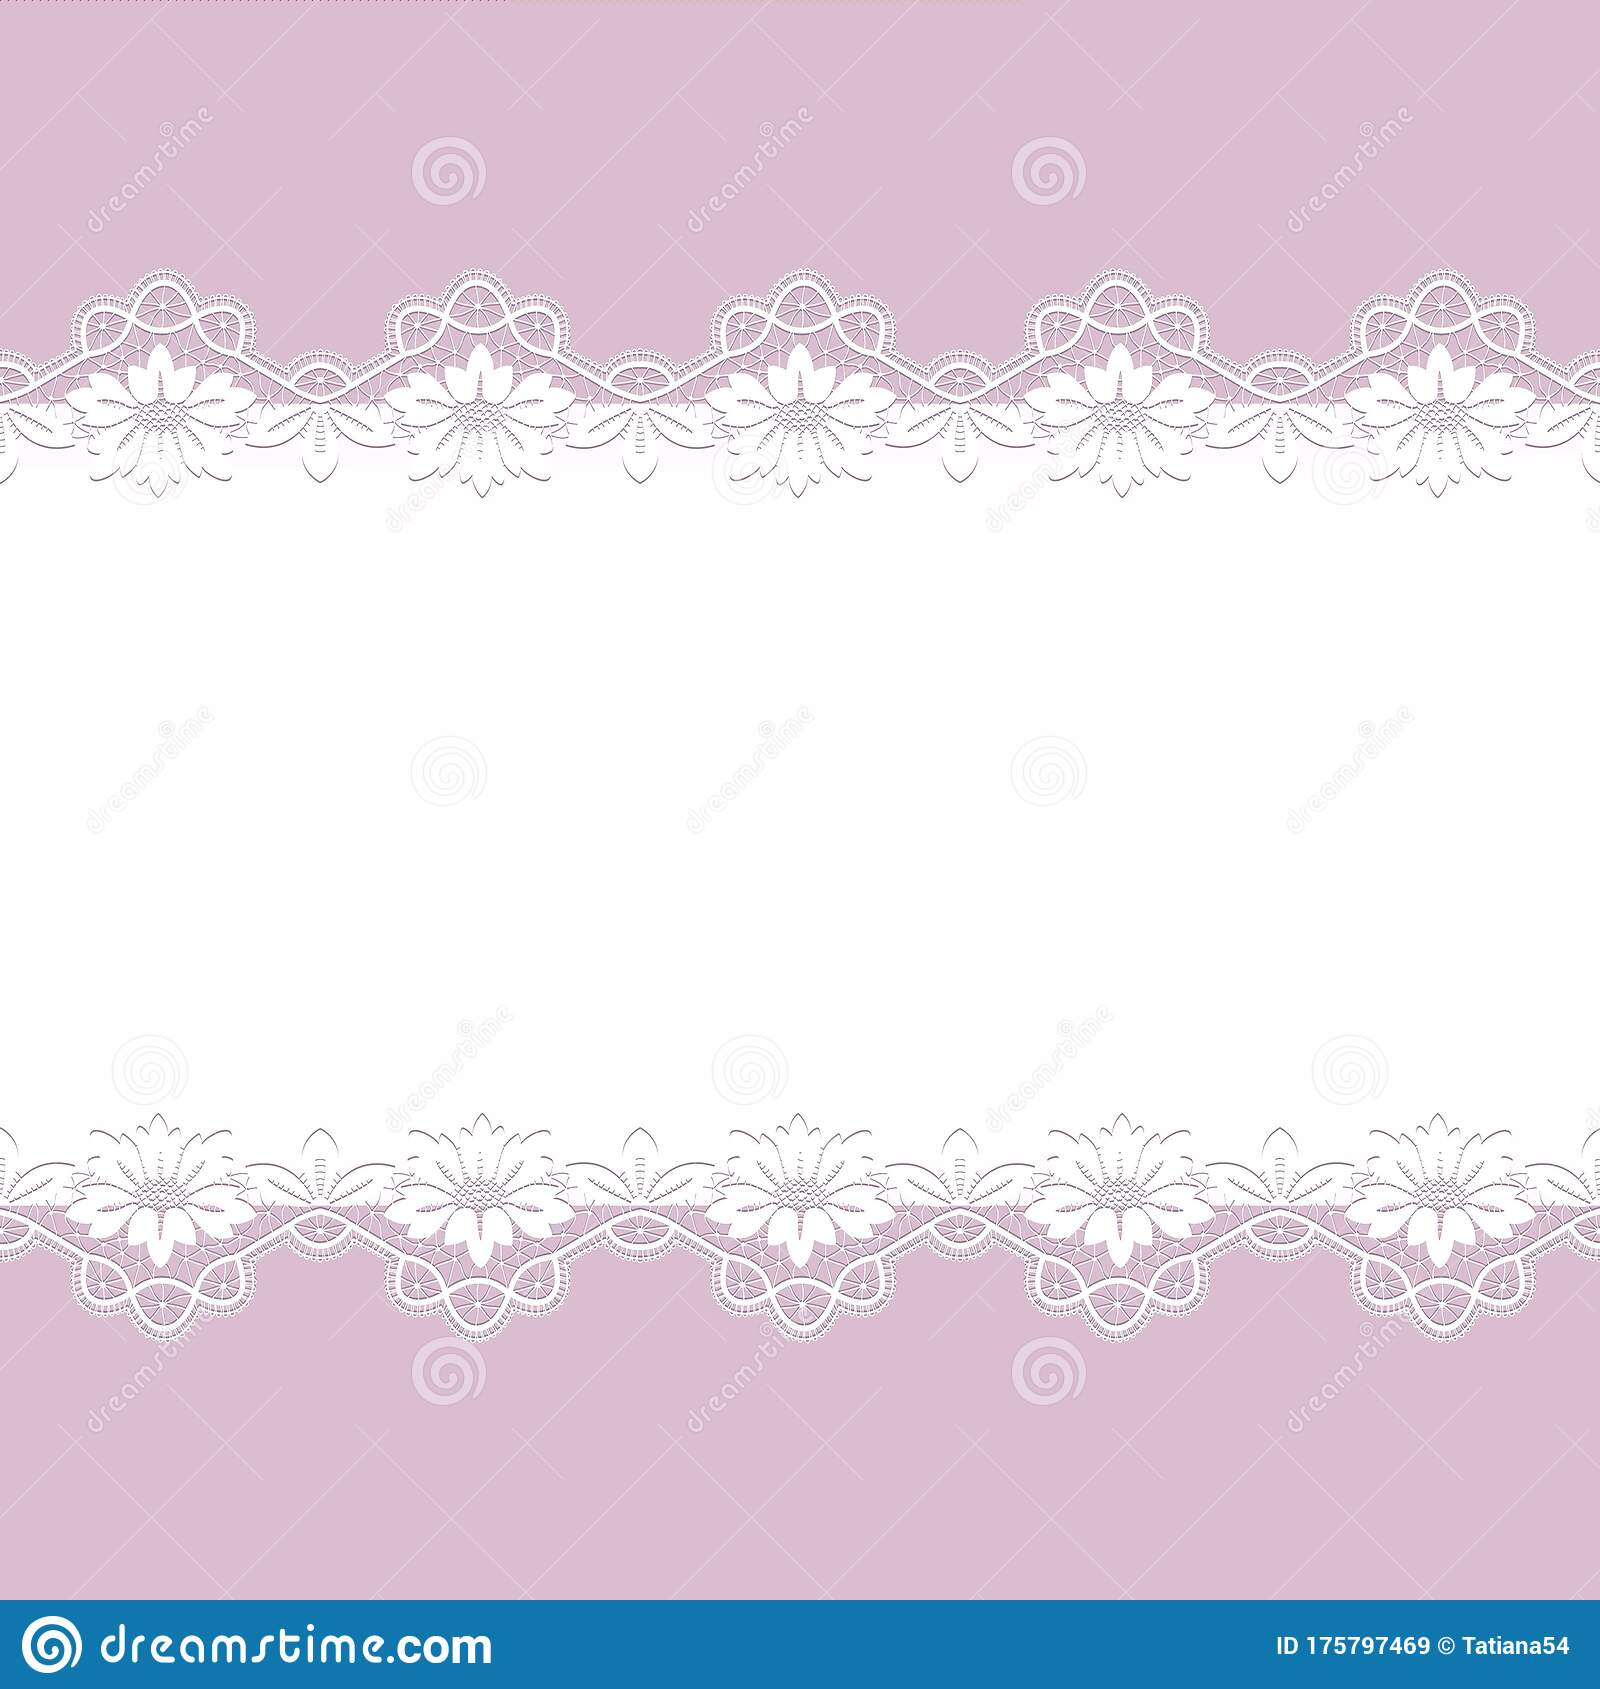 card with lace borders stock vector illustration of